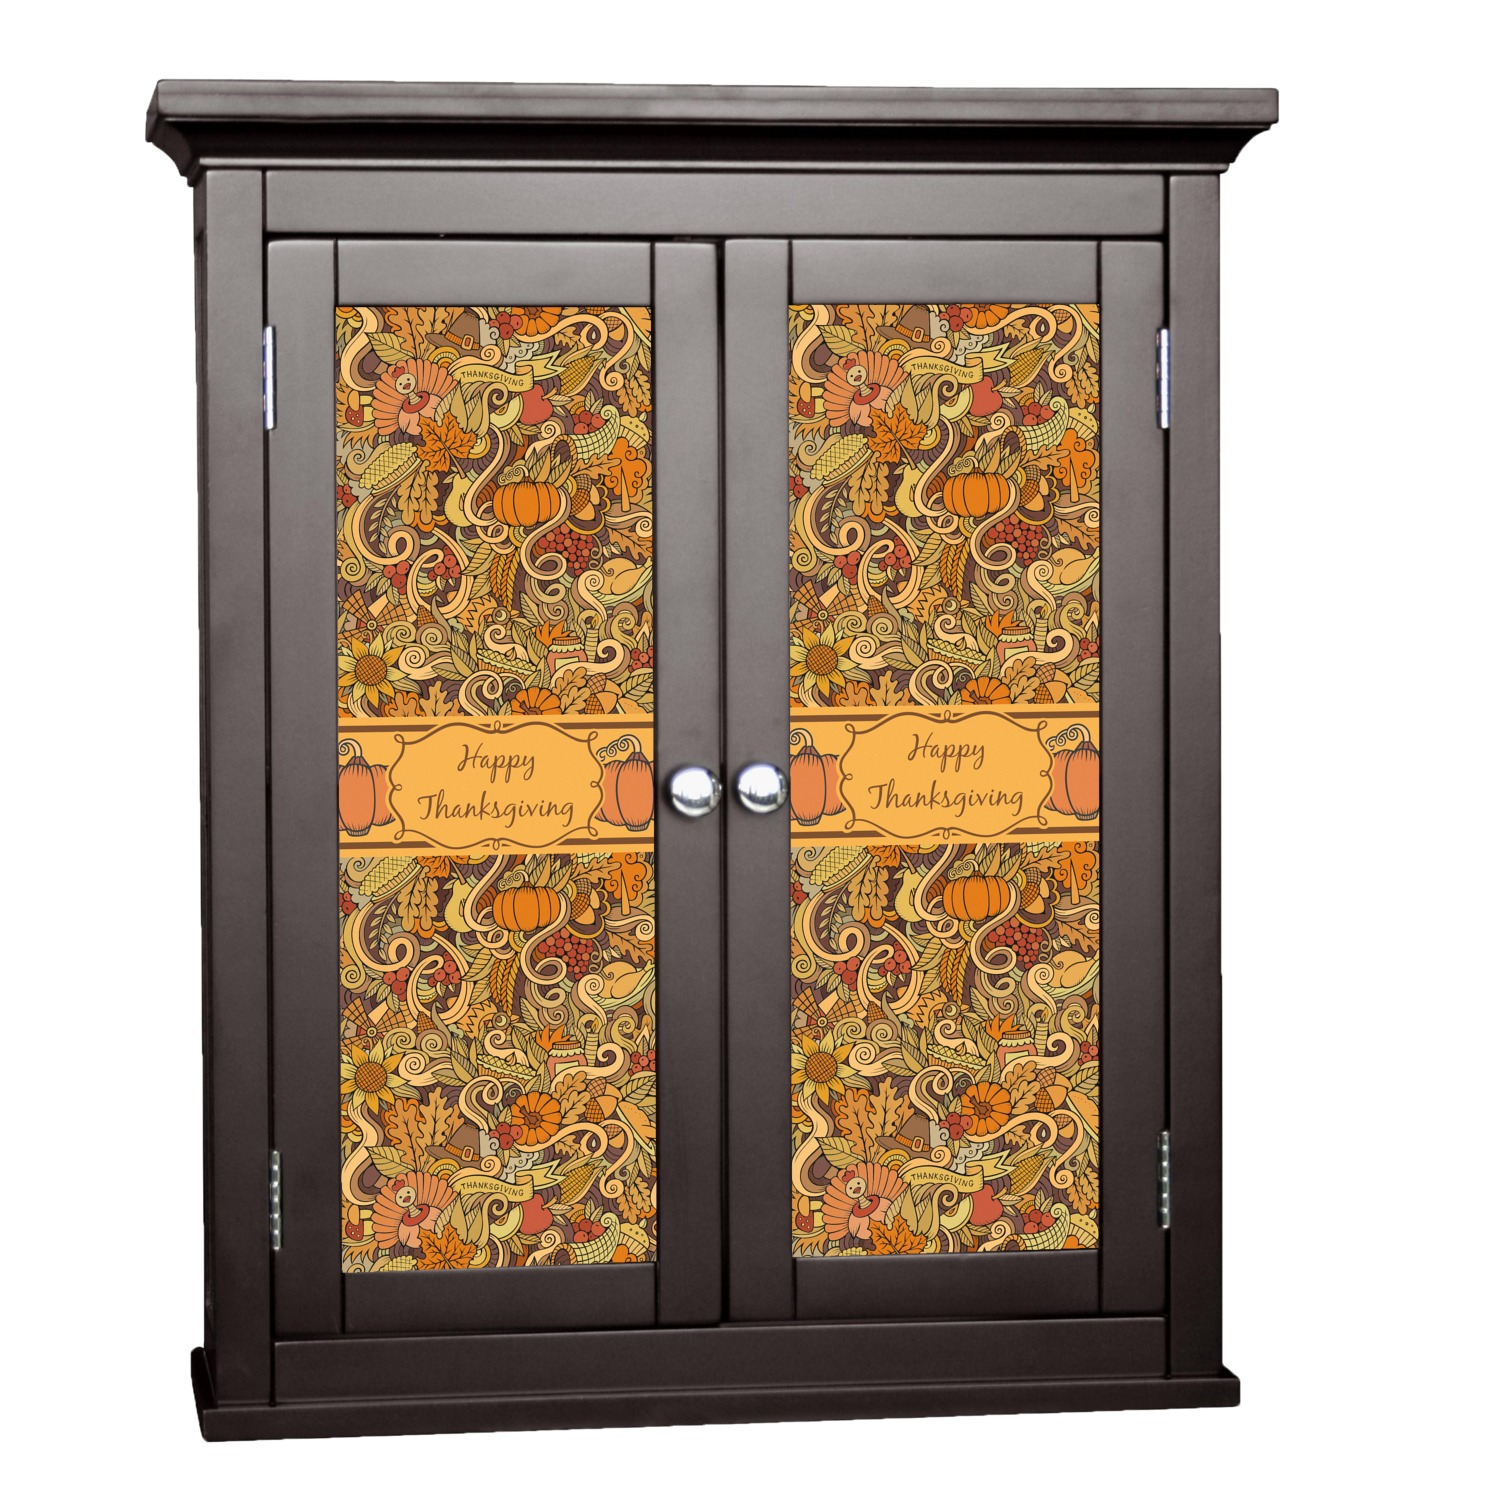 Thanksgiving cabinet decal custom size personalized for Kitchen cabinets lowes with how to make decal stickers